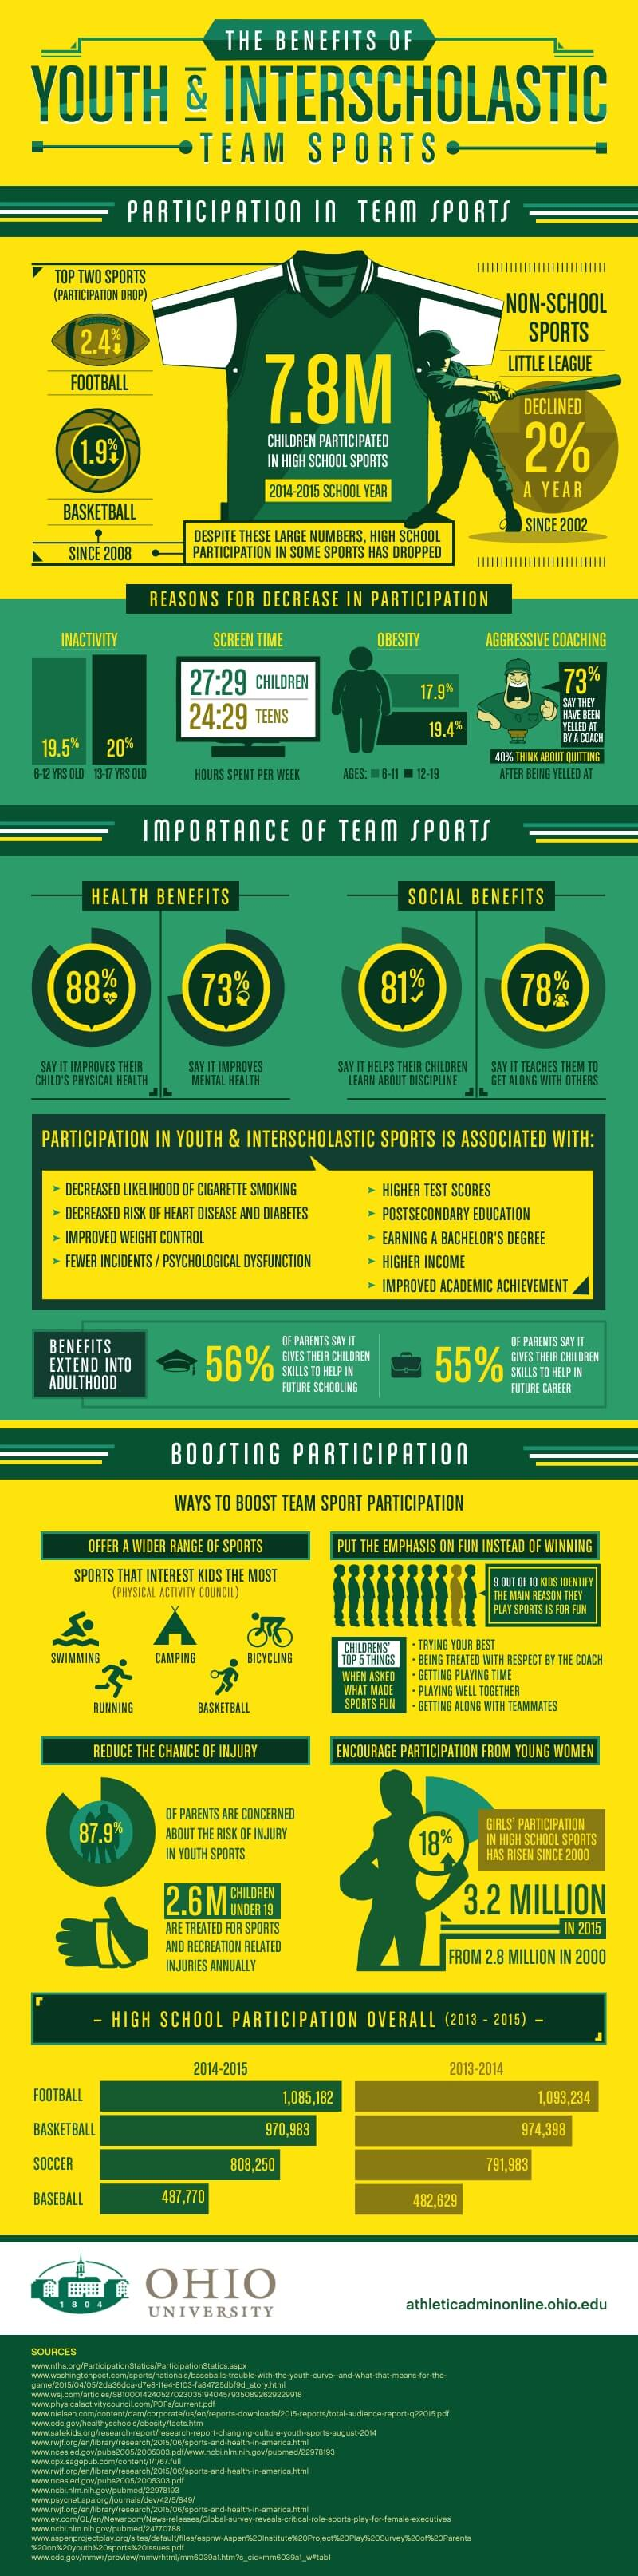 The Benefits and Impact of Youth & Interscholastic Sports #infographic